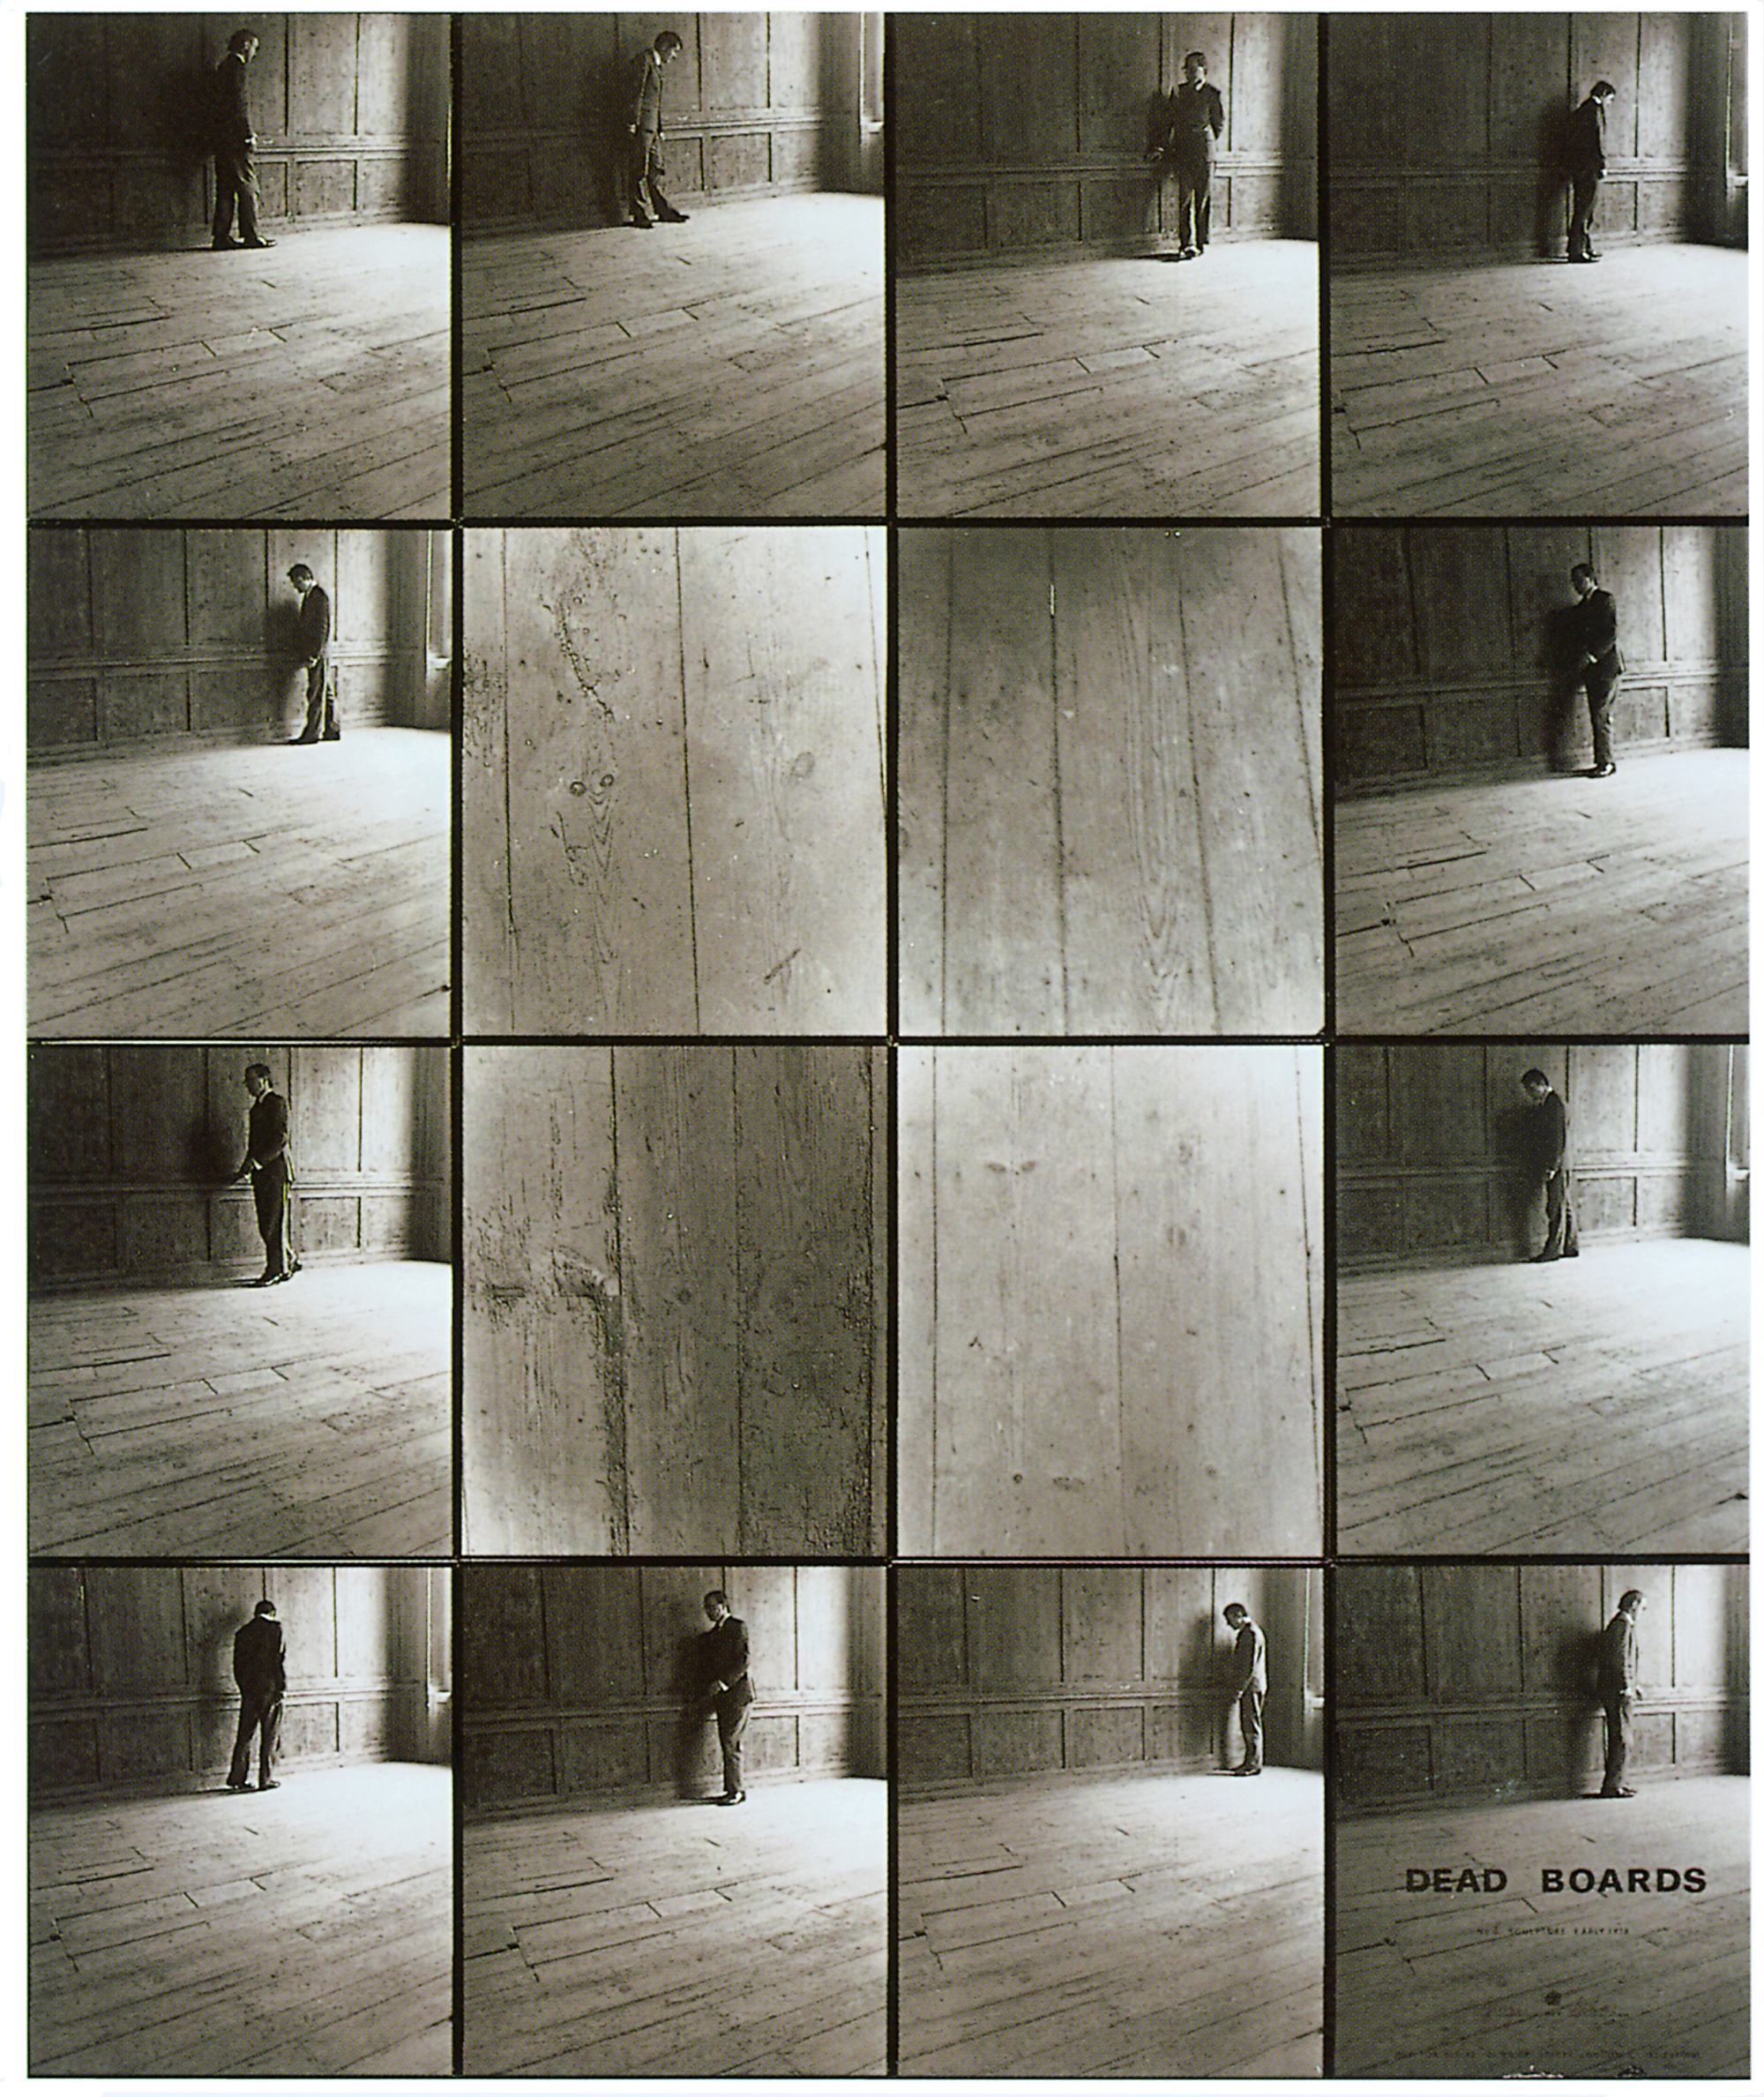 Dead Boards # 8 by Gilbert & George is a series of photos in their London home.